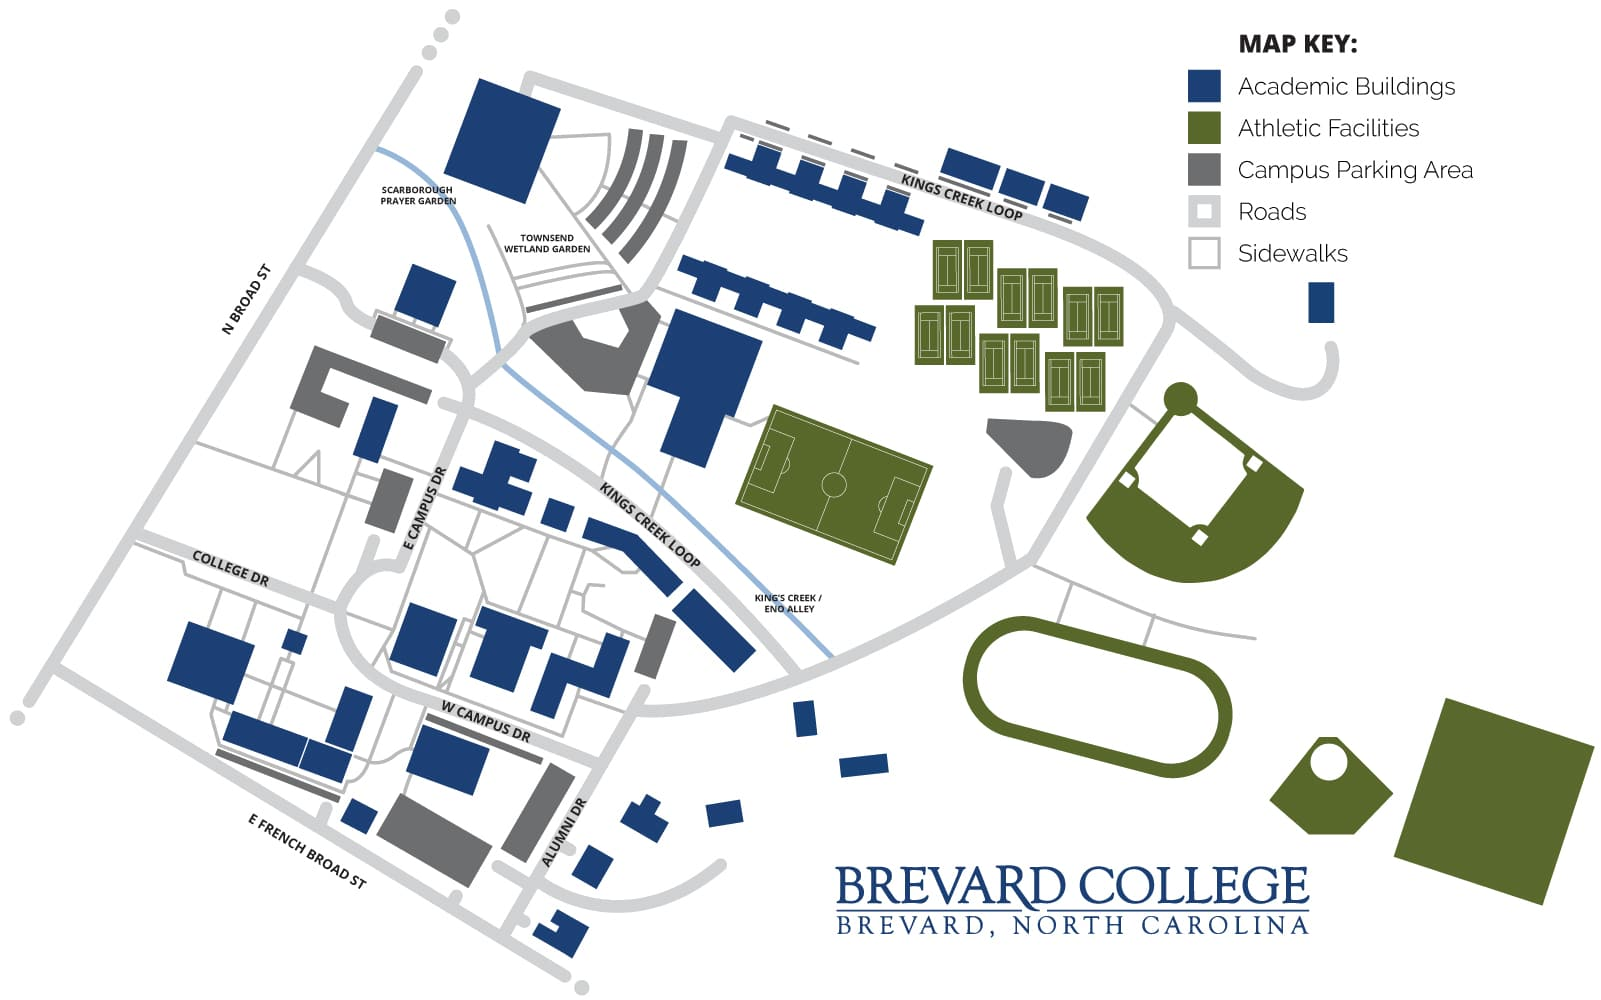 King University Campus Map.Brevard College Campus Map View Download Brevard College